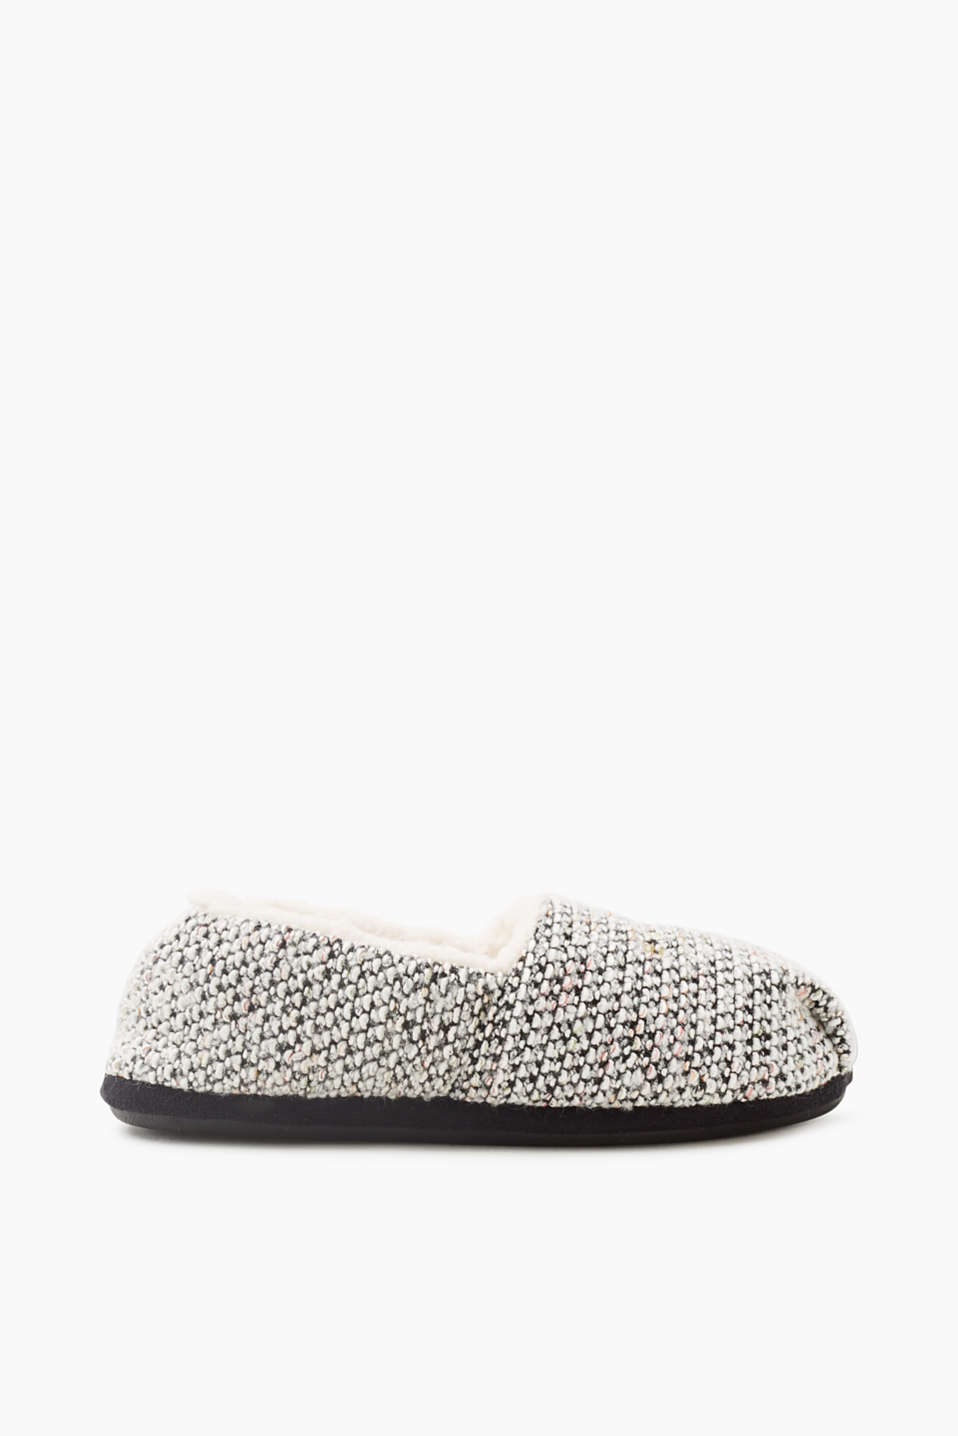 Comfortable in bouclé: Along with soft fake fur, these ballerinas also have a fashionable, textured upper!